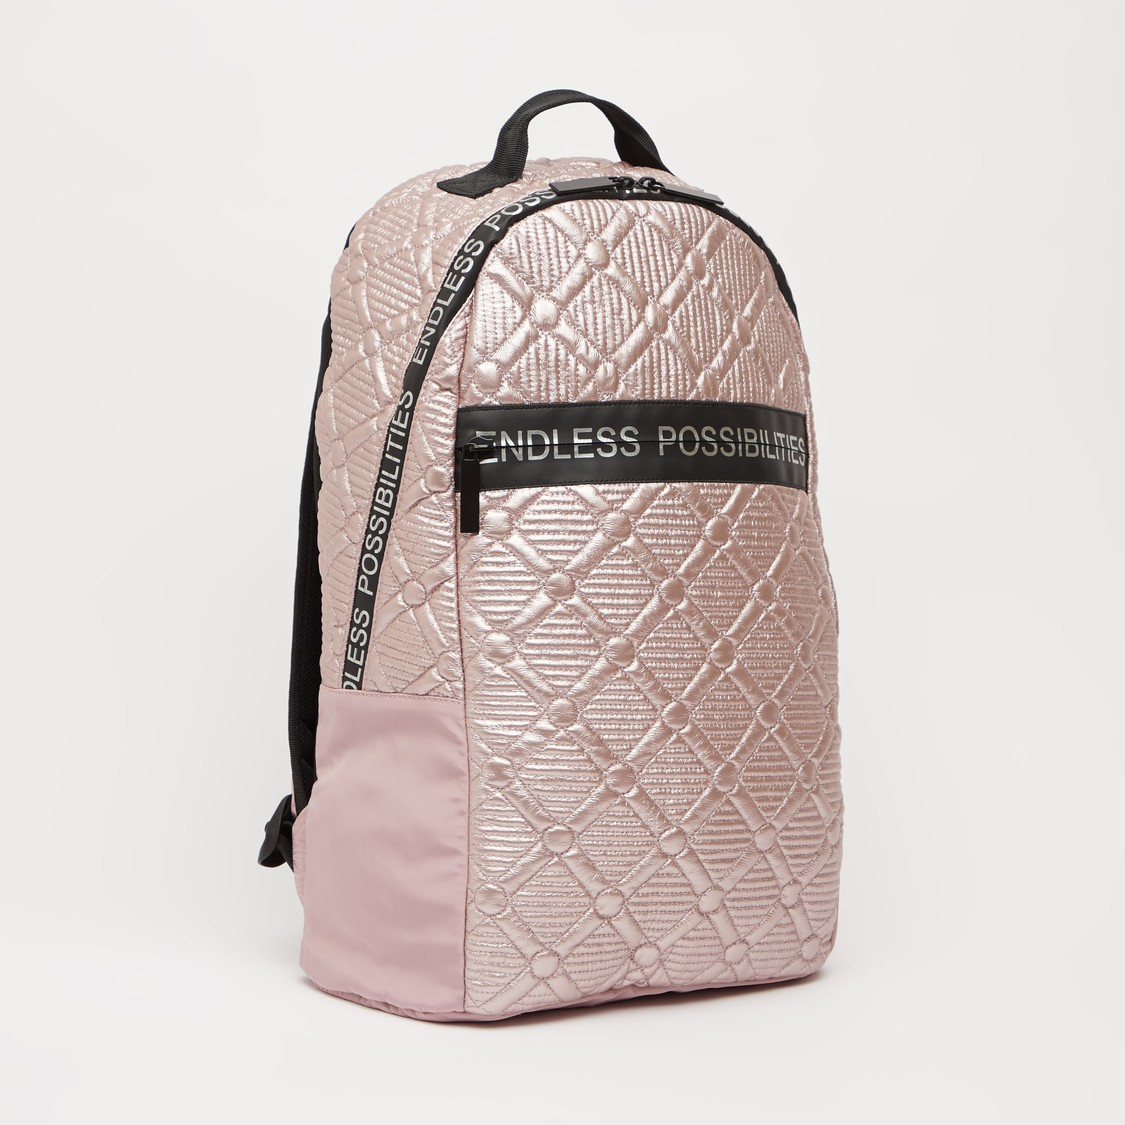 Textured Backpack with Adjustable Straps and Zip Closure - 18 Inches